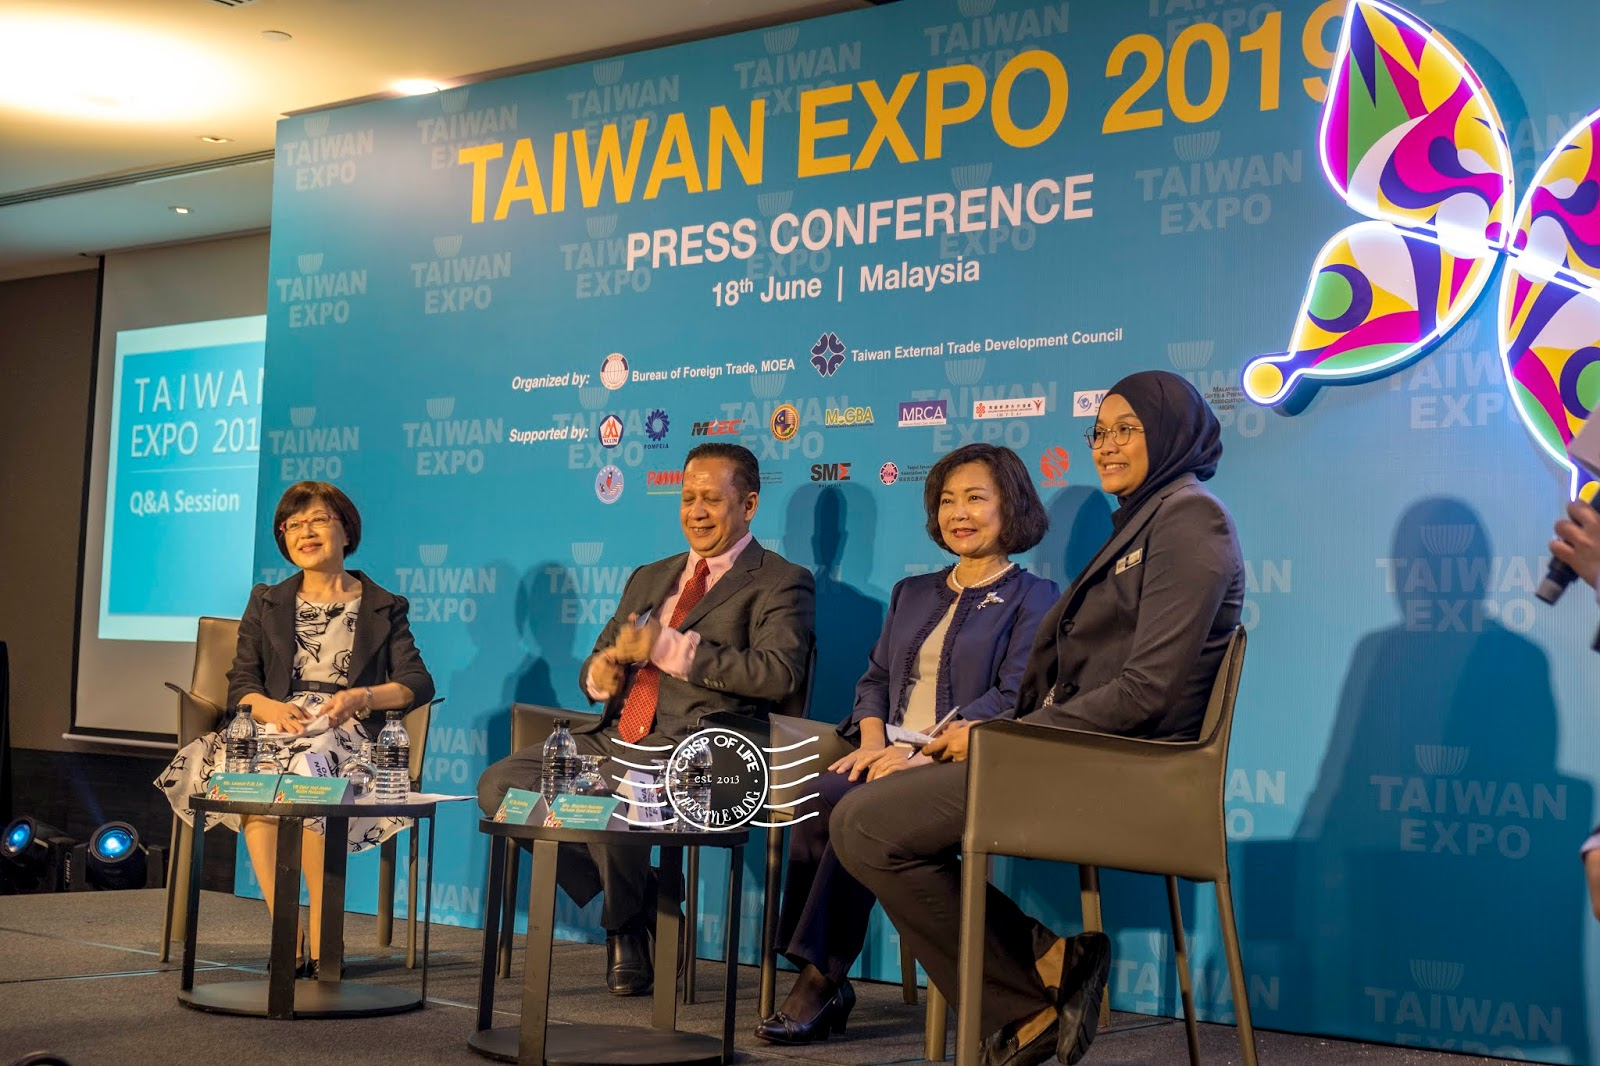 Taiwan Expo 2019 in Penang for the First Time on 5th and 6th July at Setua Spice Convention Centre